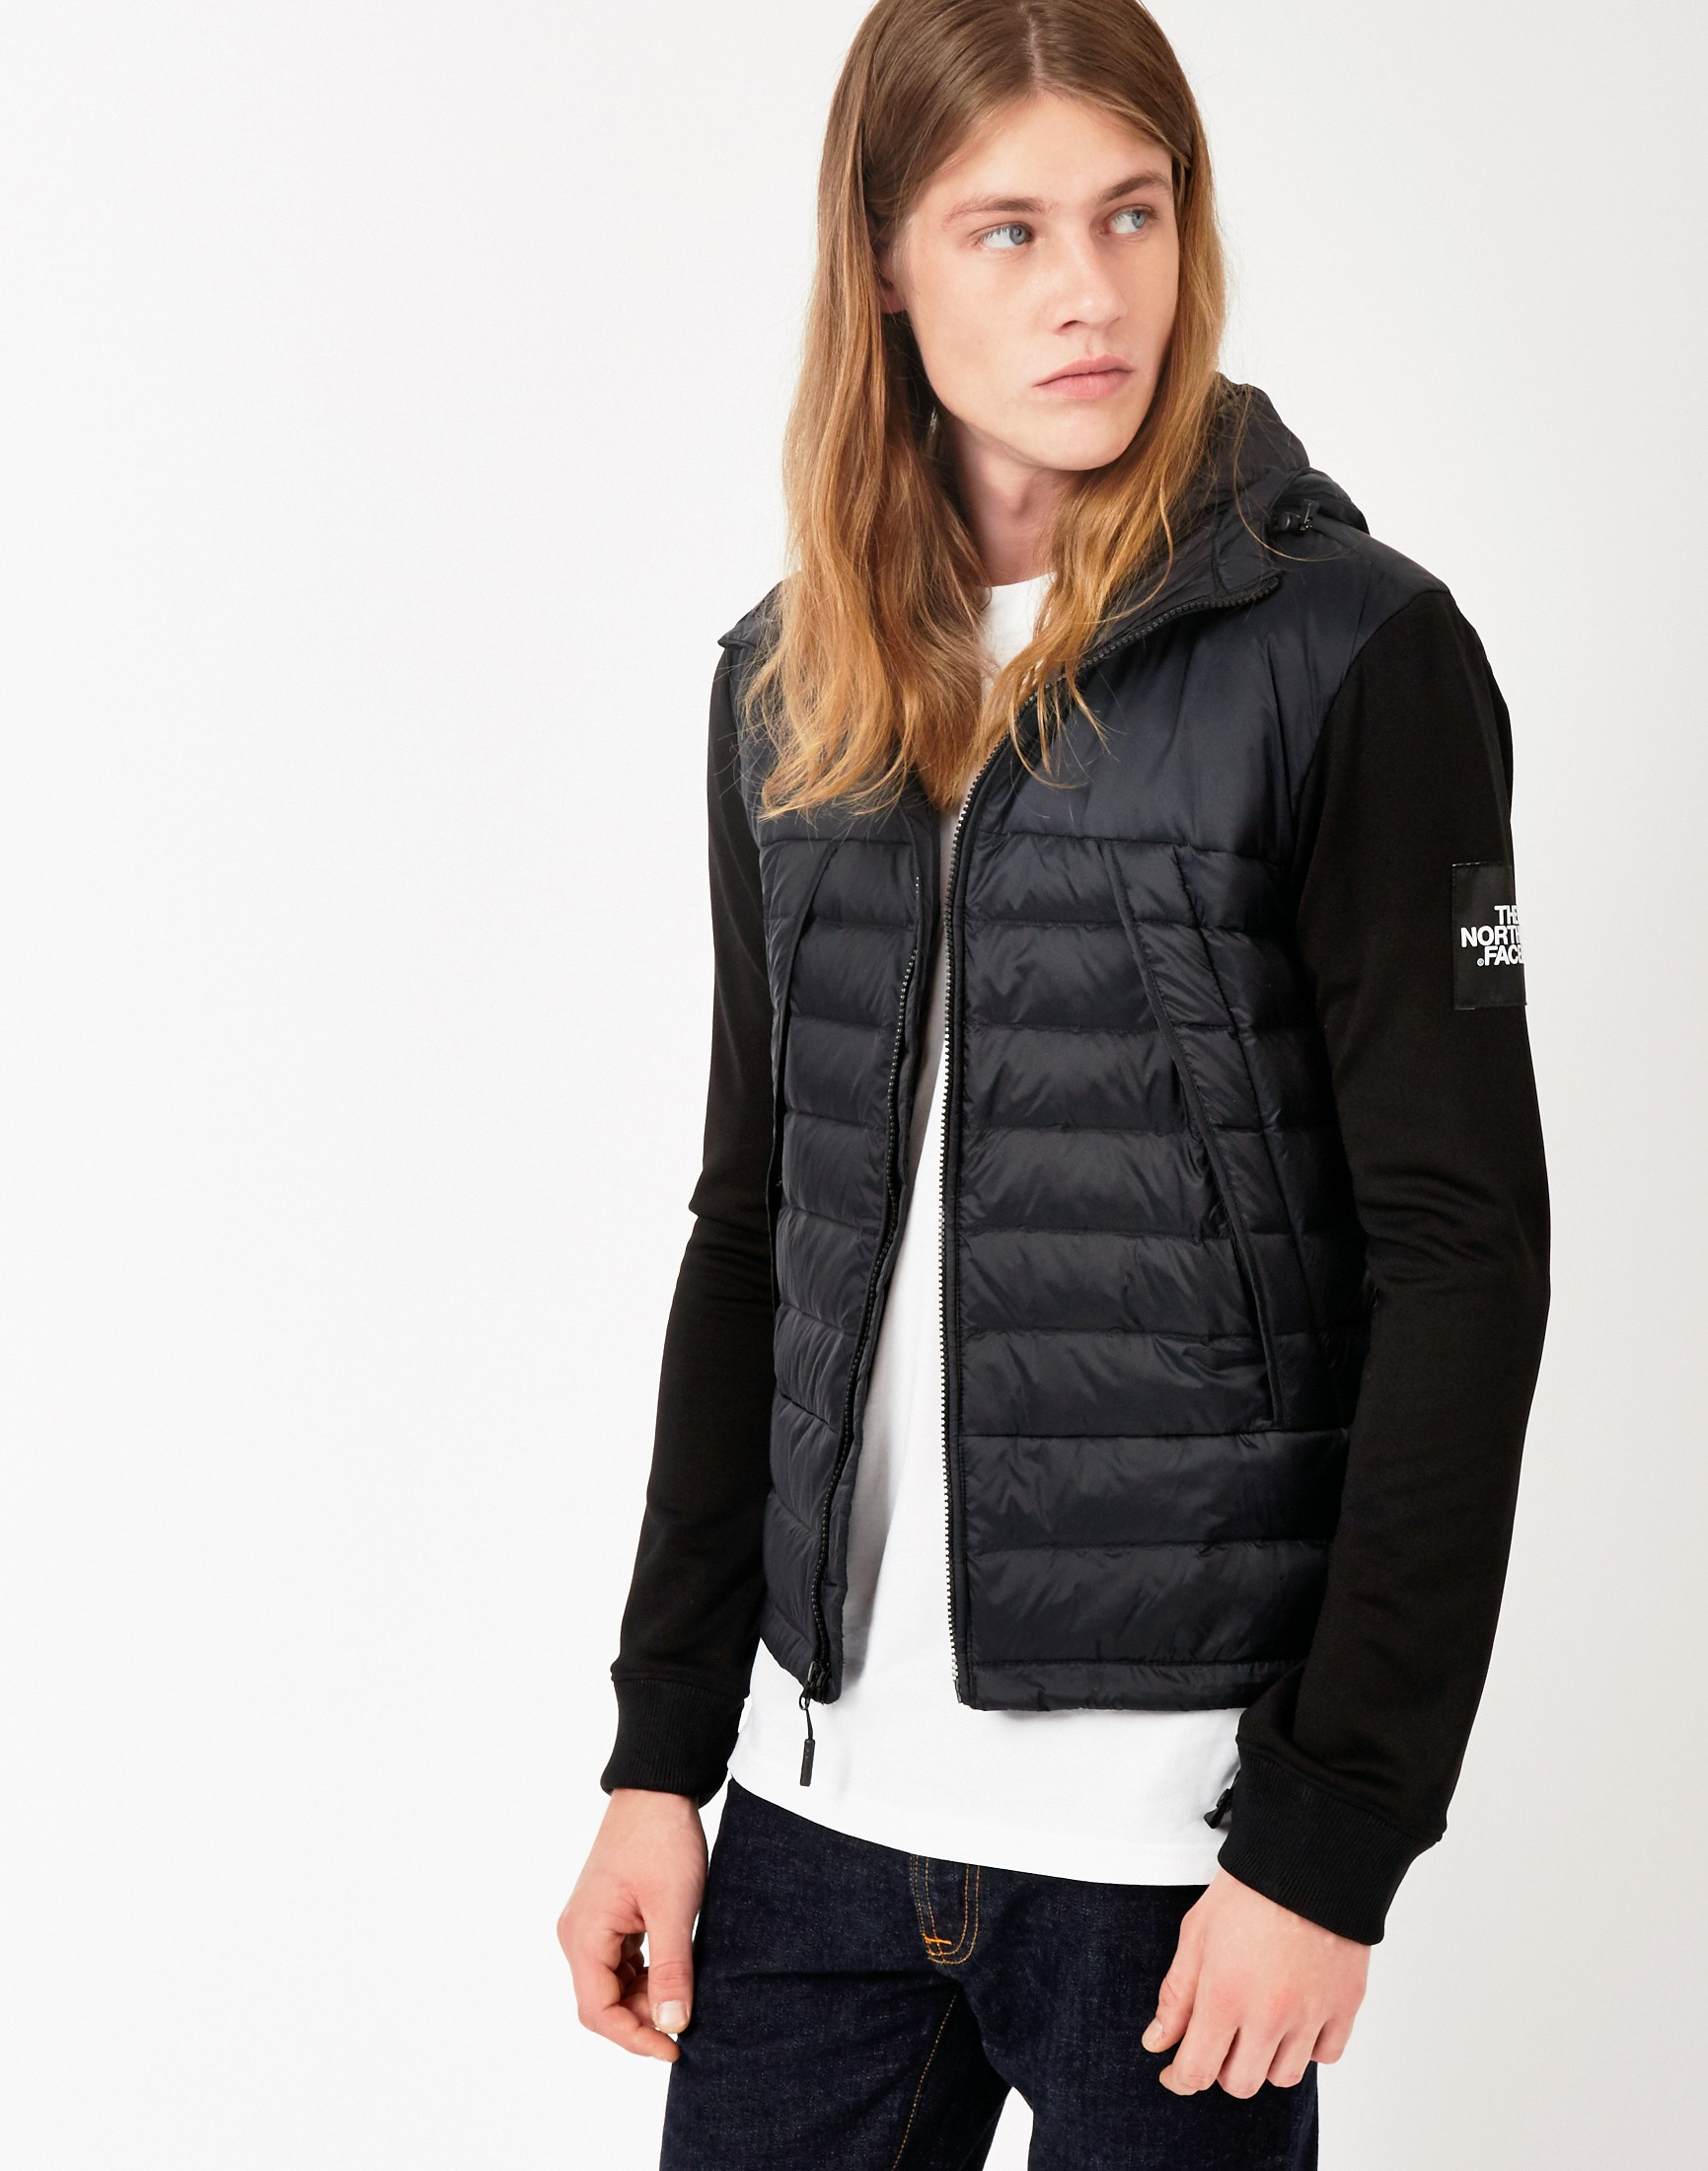 cd24f6e329c7 Lyst - The North Face Black Label Mountain Crimpt Jacket Black in ...